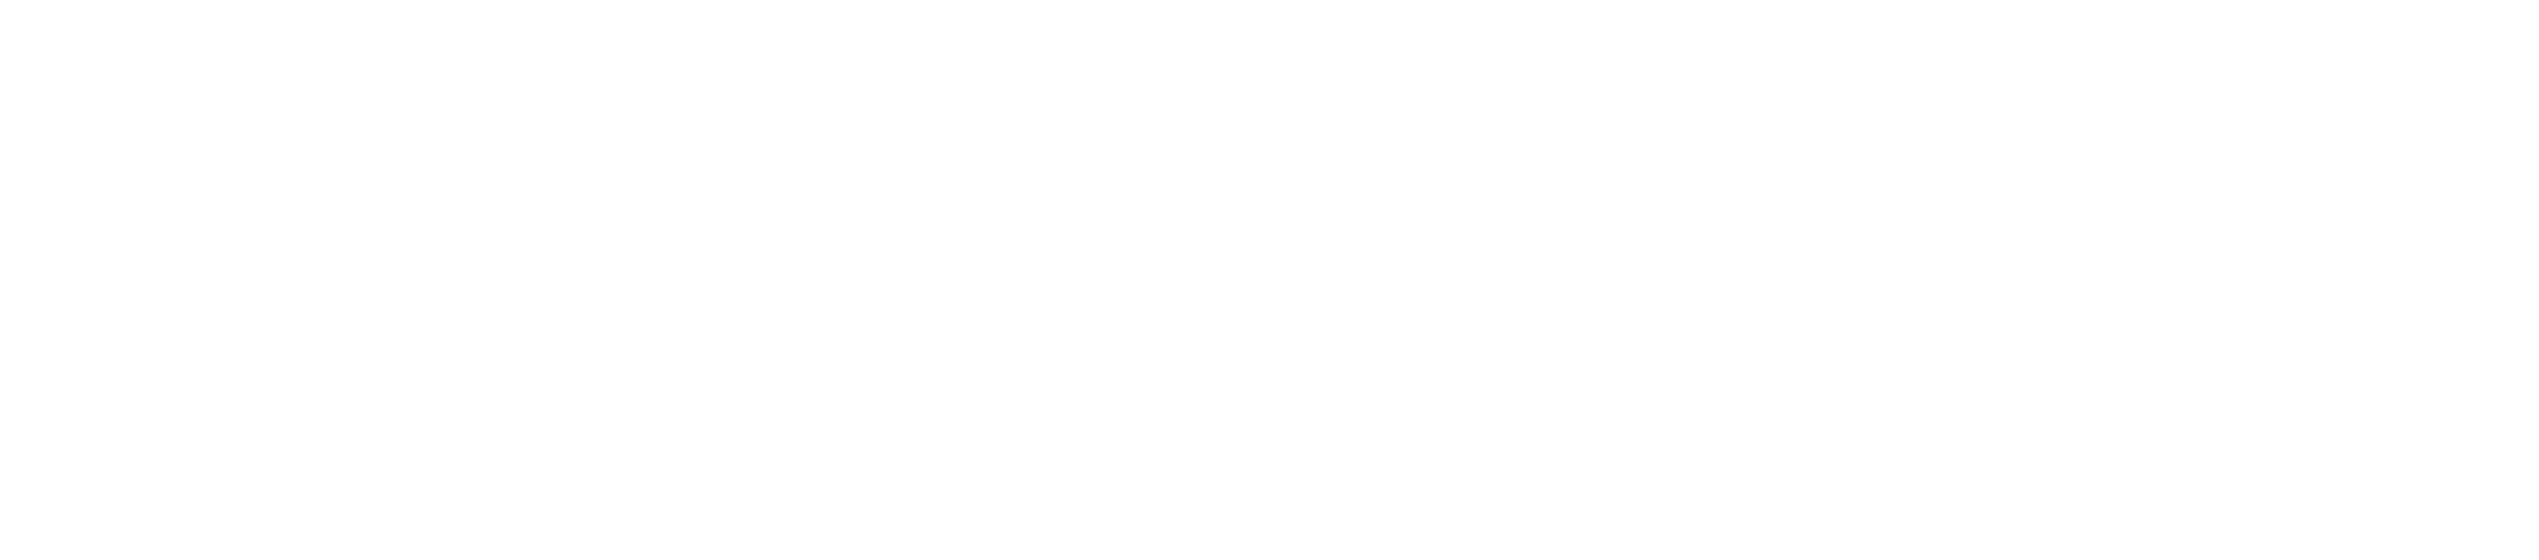 Kodiak Sportsmans Lodge Logo white